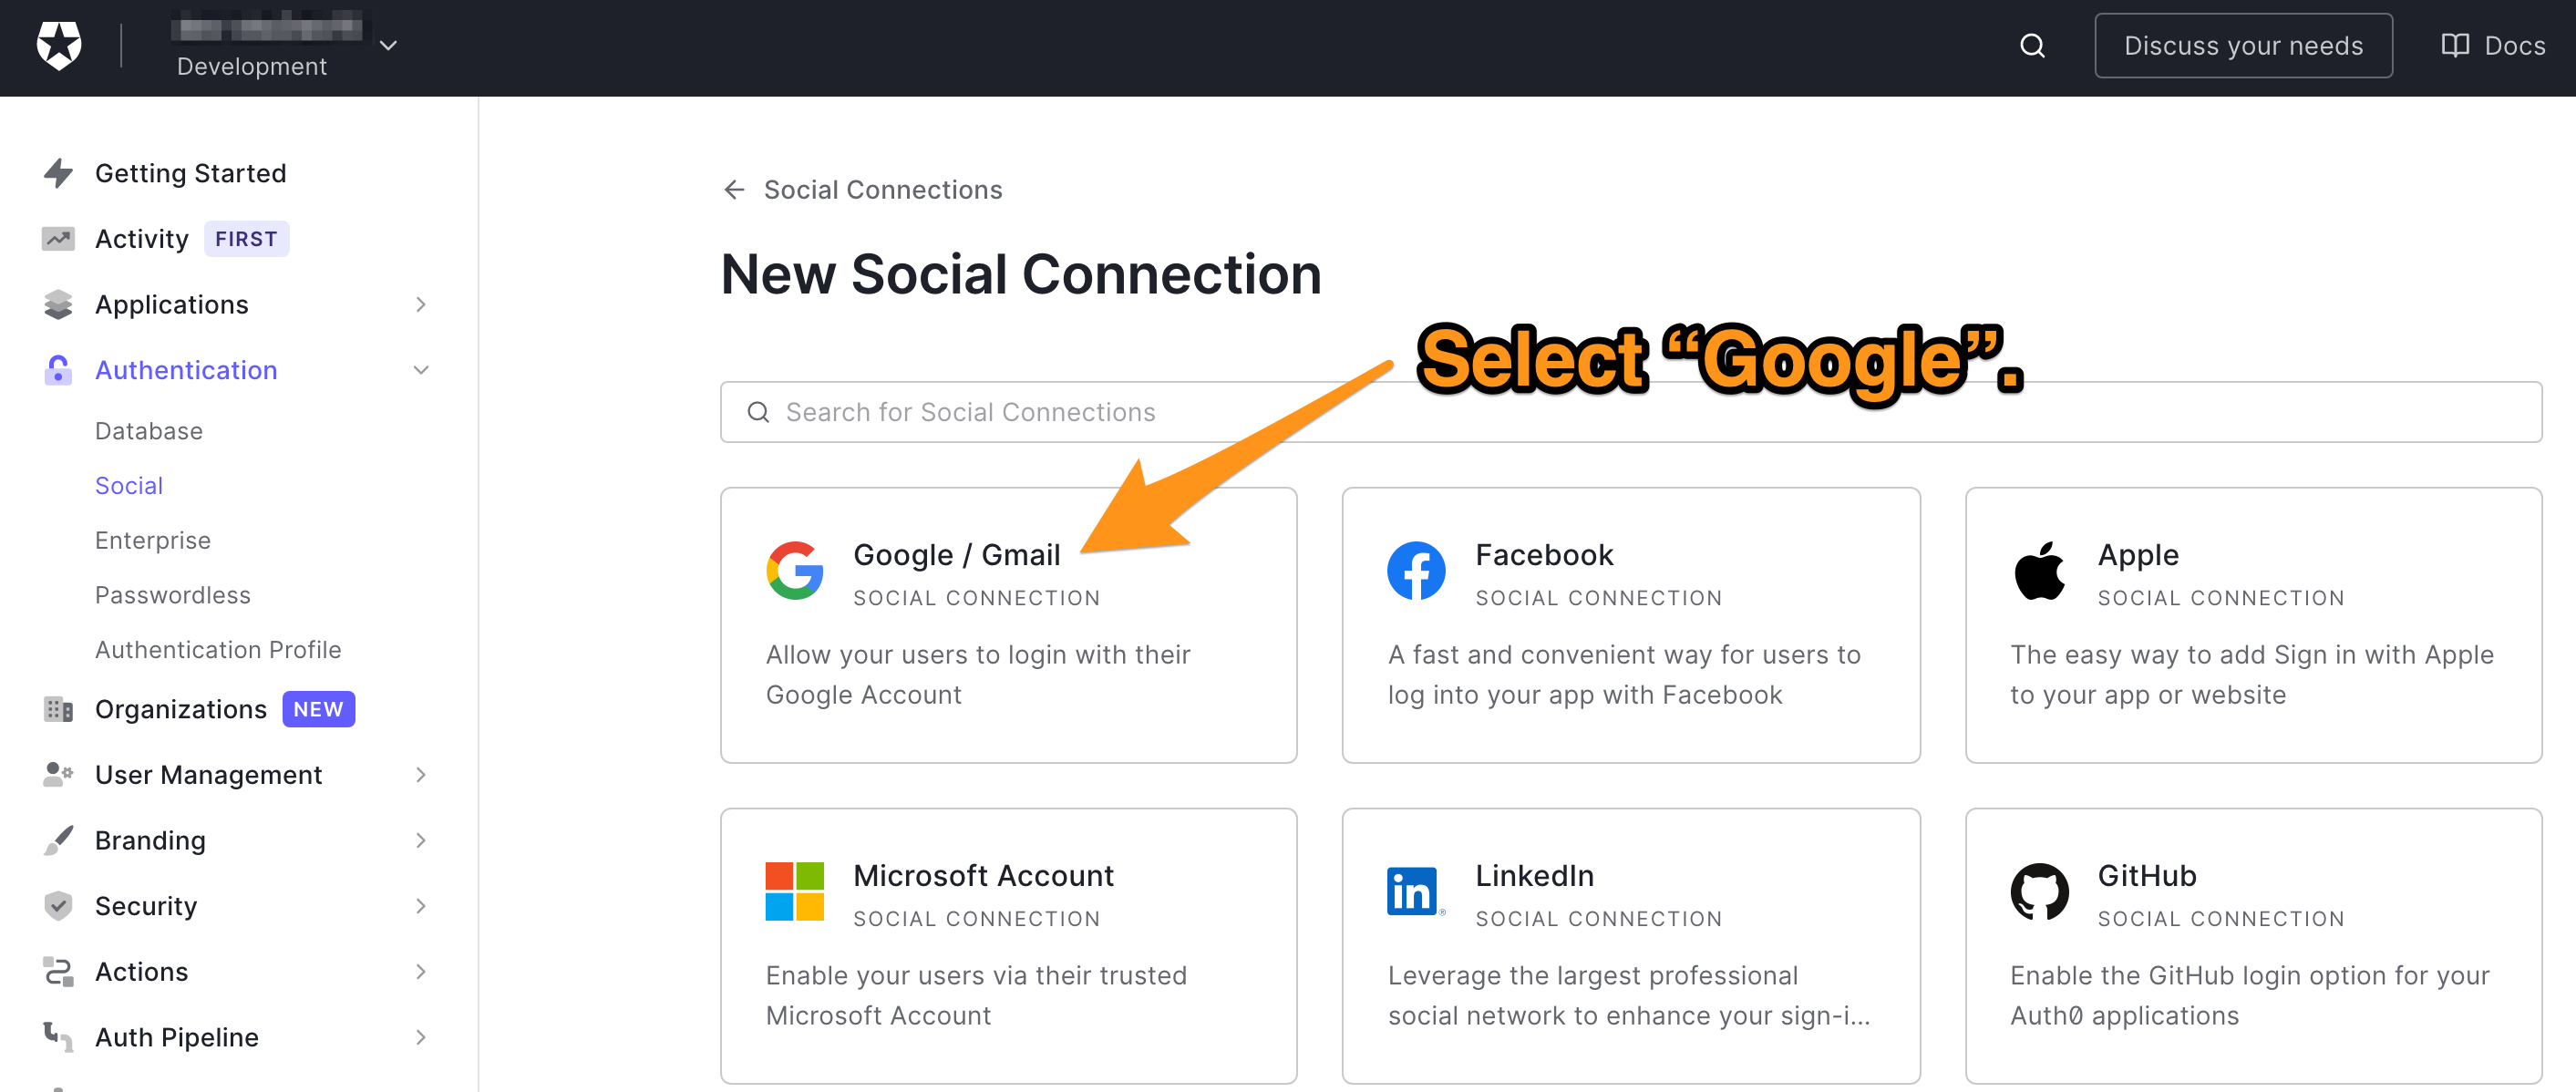 Selecting Google from all the available social connections